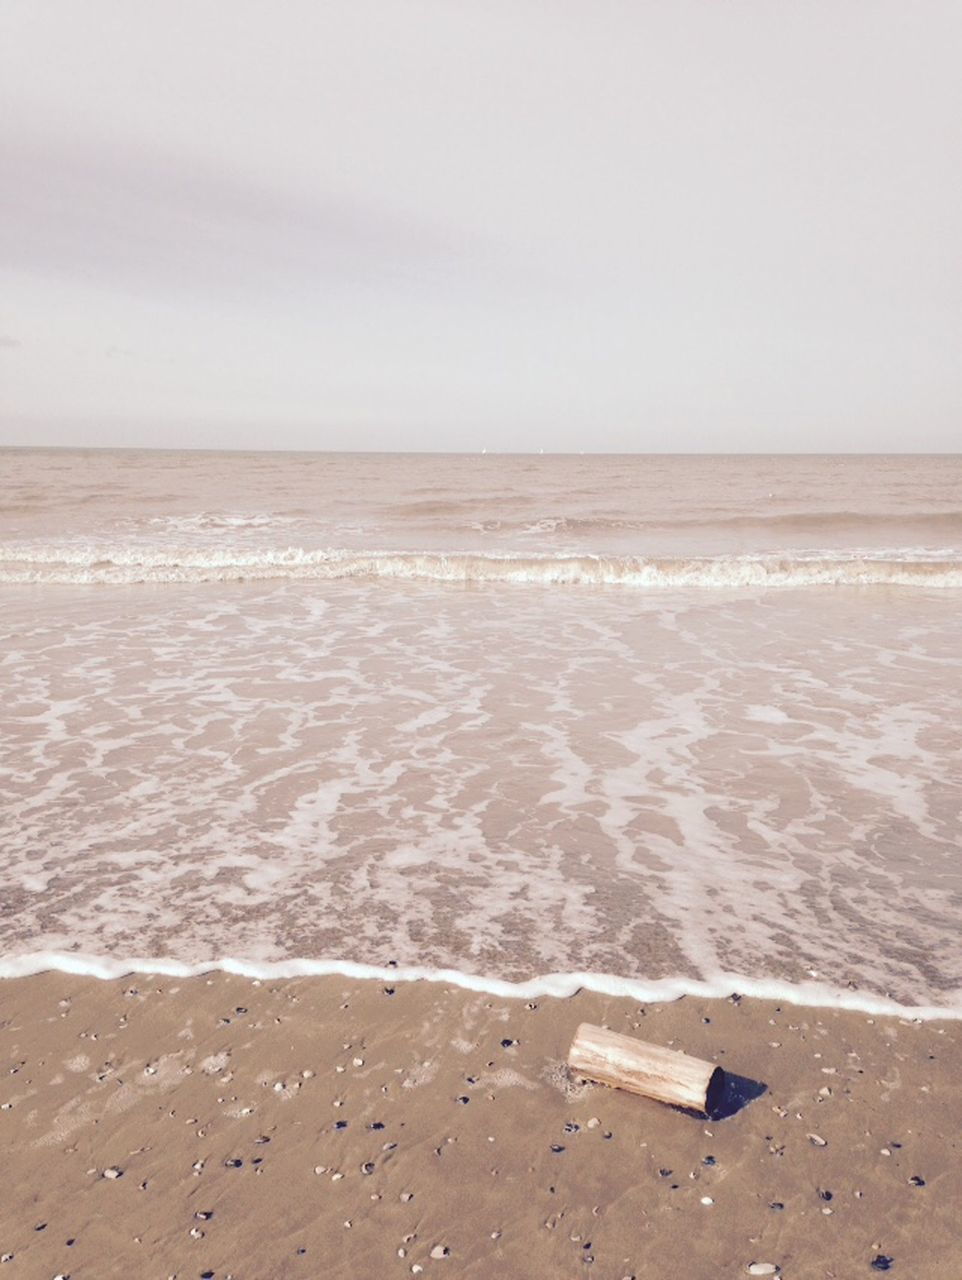 beach, sand, sea, shore, nature, water, horizon over water, beauty in nature, scenics, tranquility, no people, sky, outdoors, wave, summer, day, clear sky